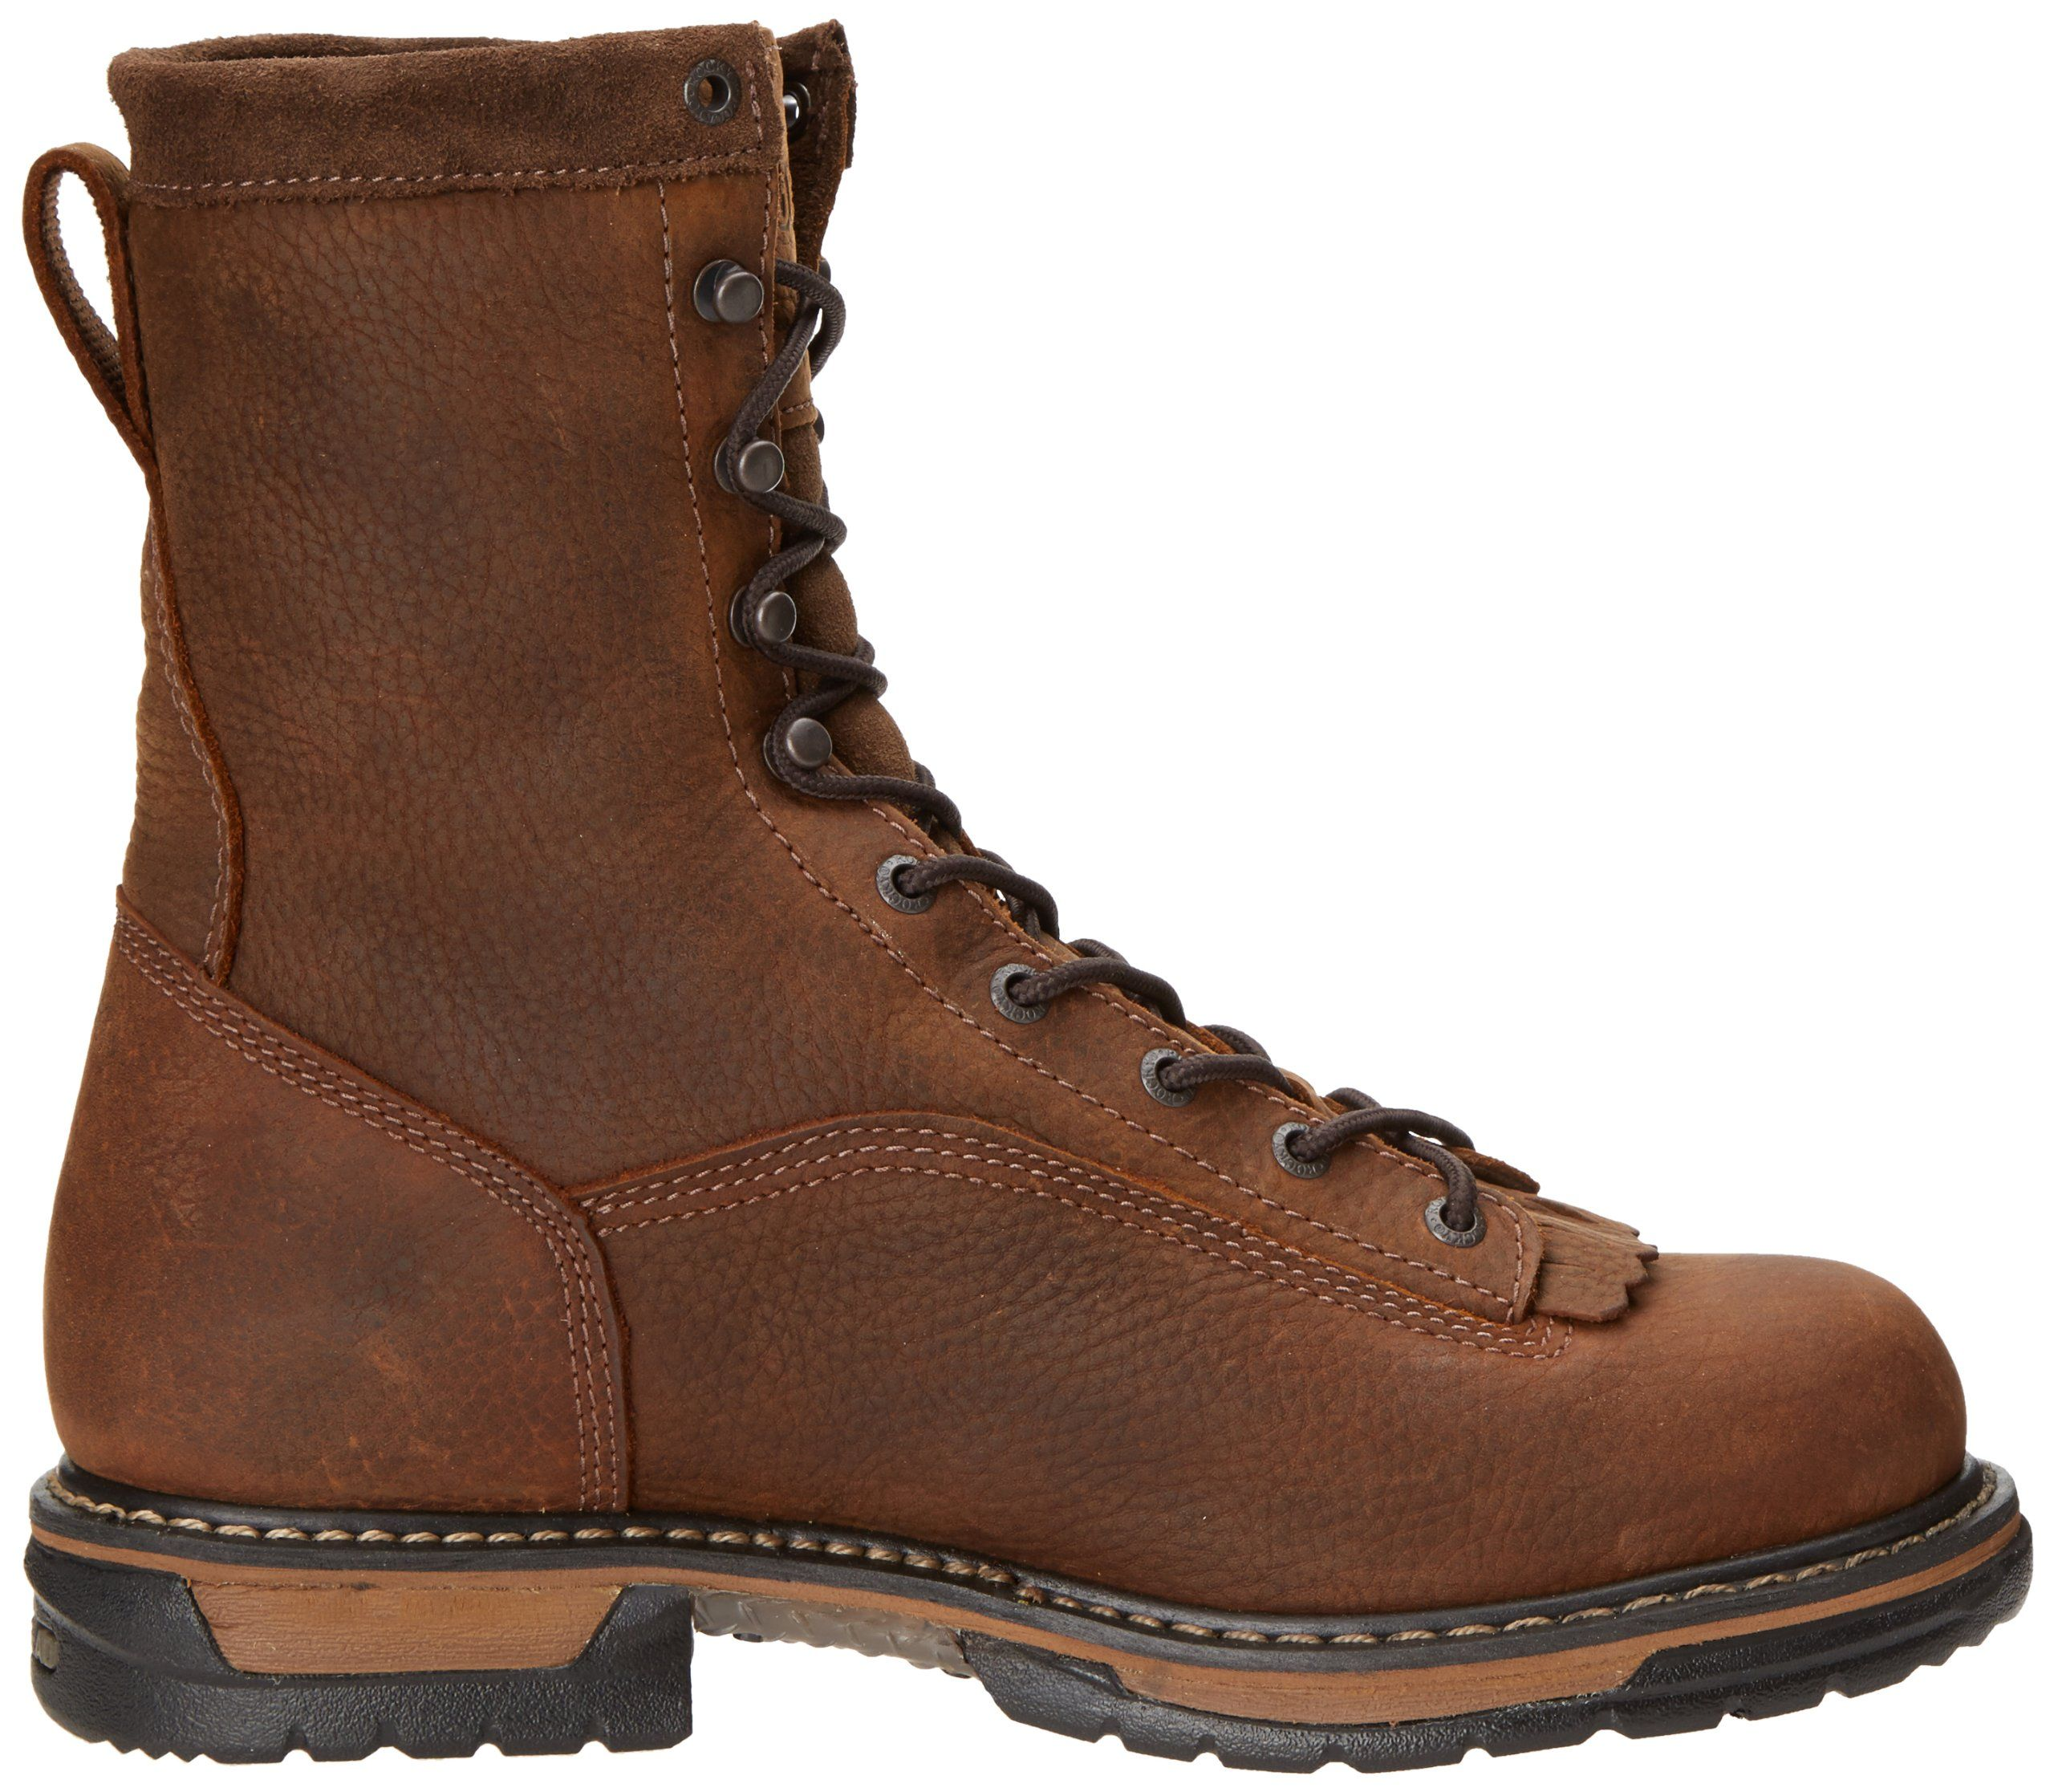 3f962a530c2 Rocky Mens Iron Clad Eight Inch LTT Work BootBrown10 M US ** Want ...